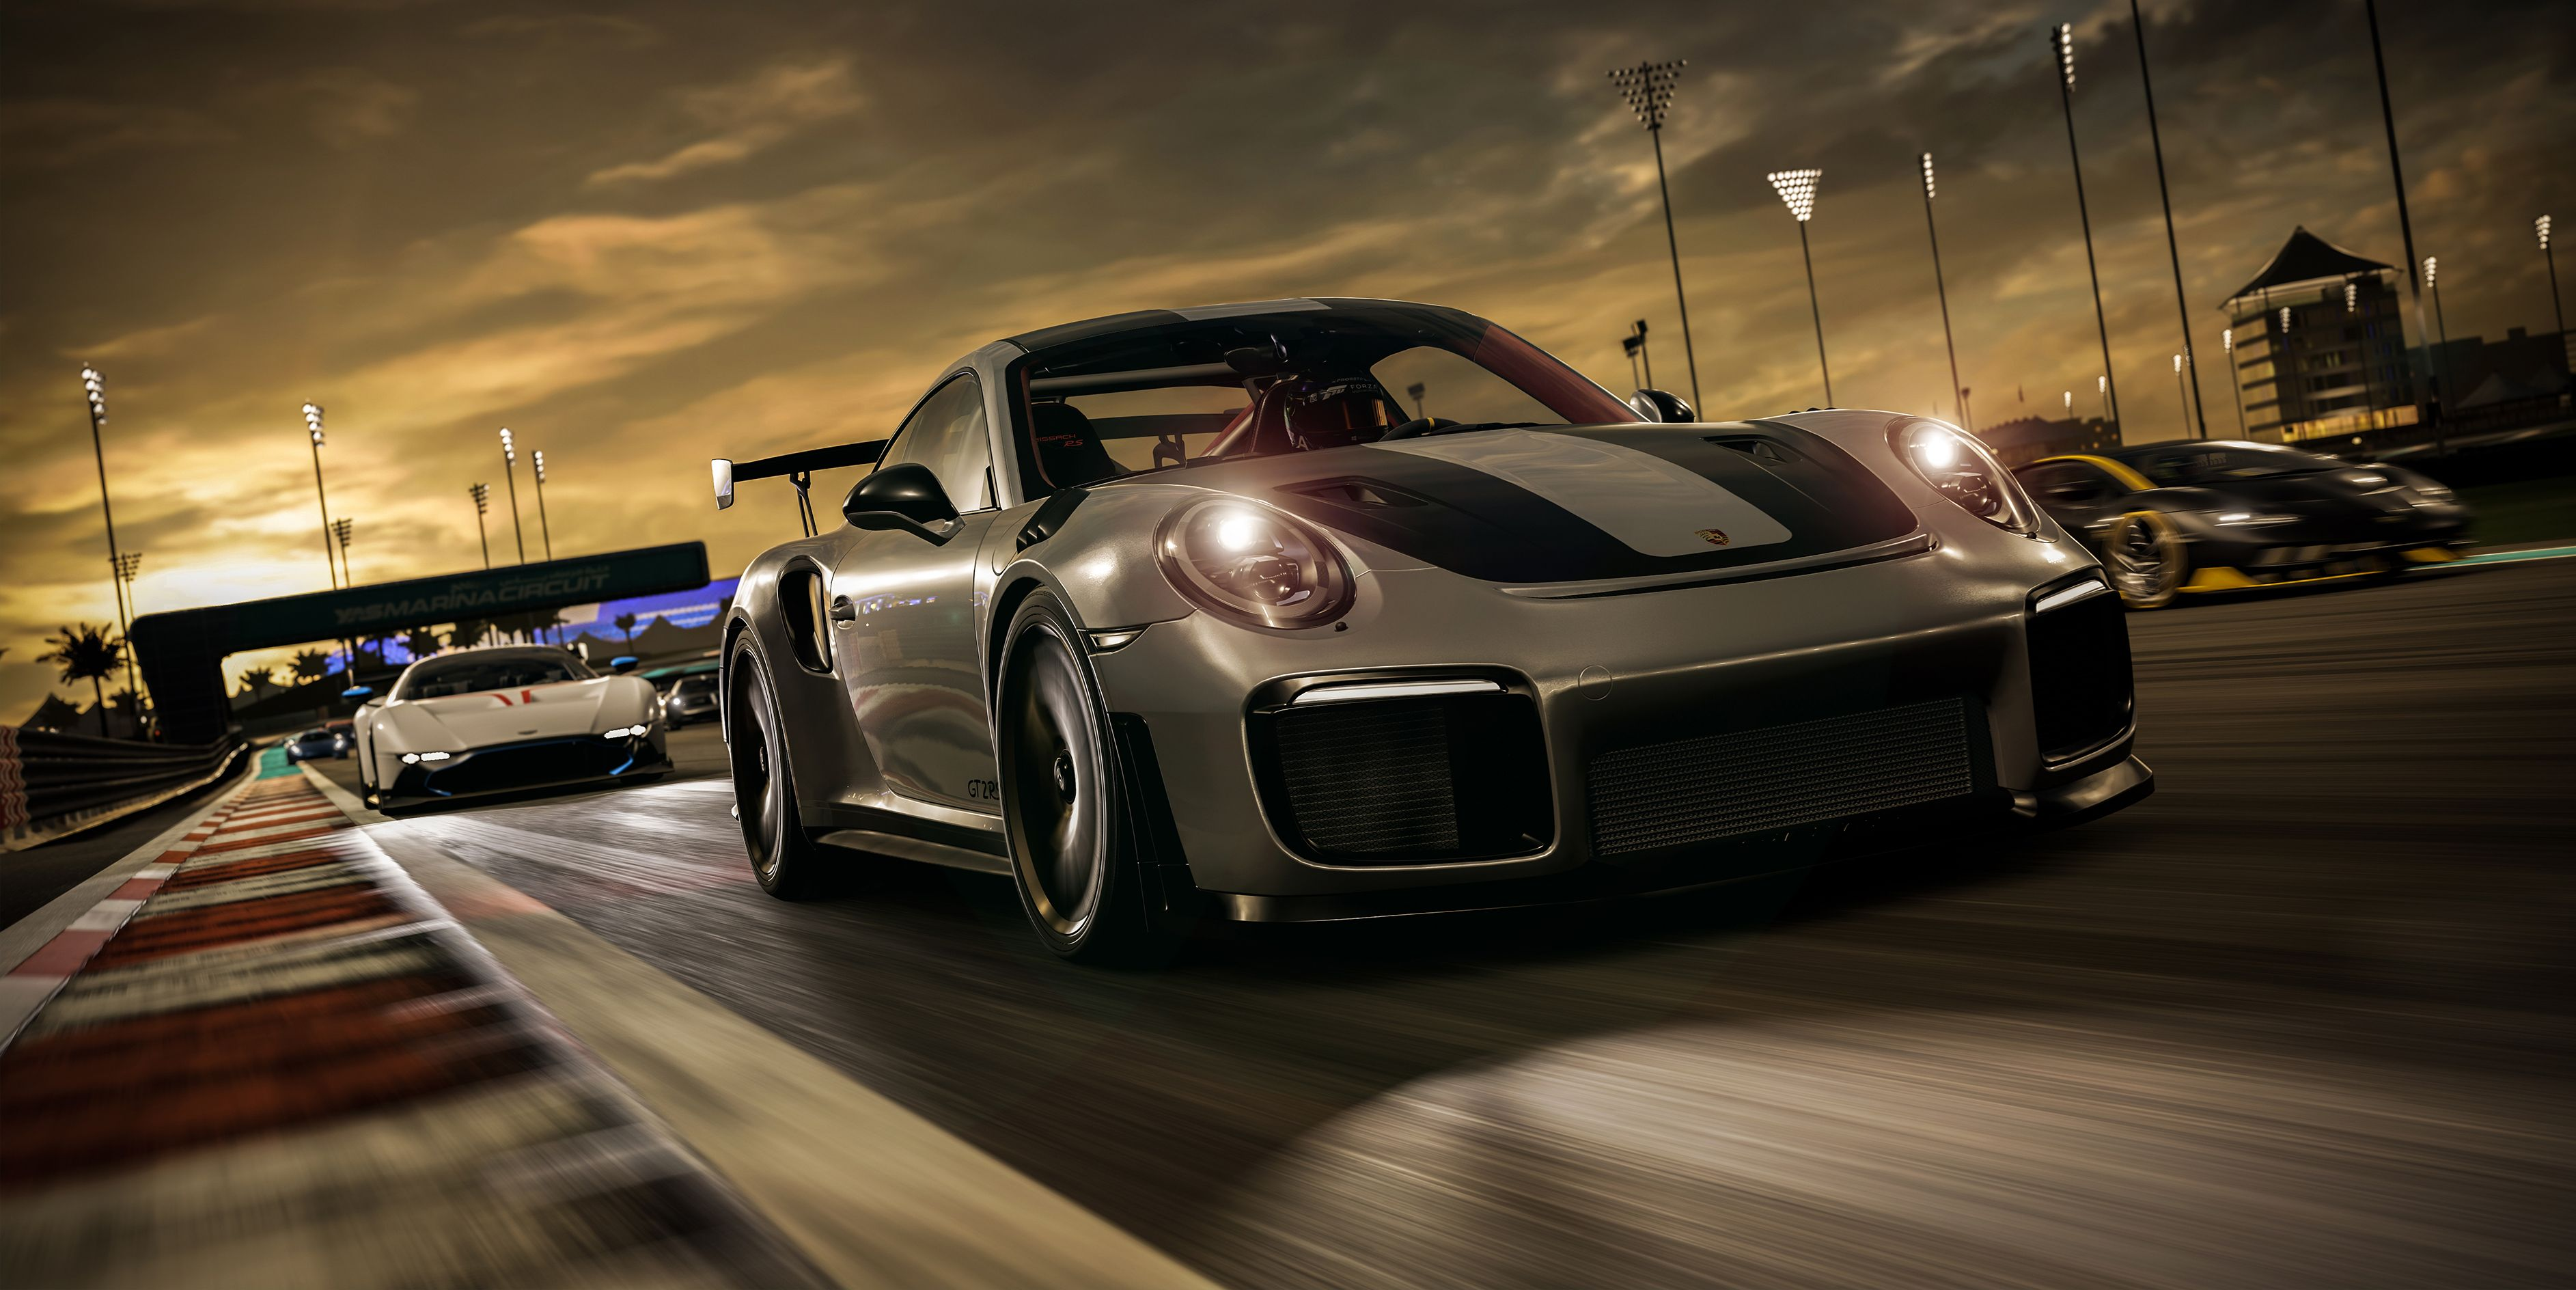 Forza Motorsport 7 Is One of Those Games You Won't Be Able to Stop Playing